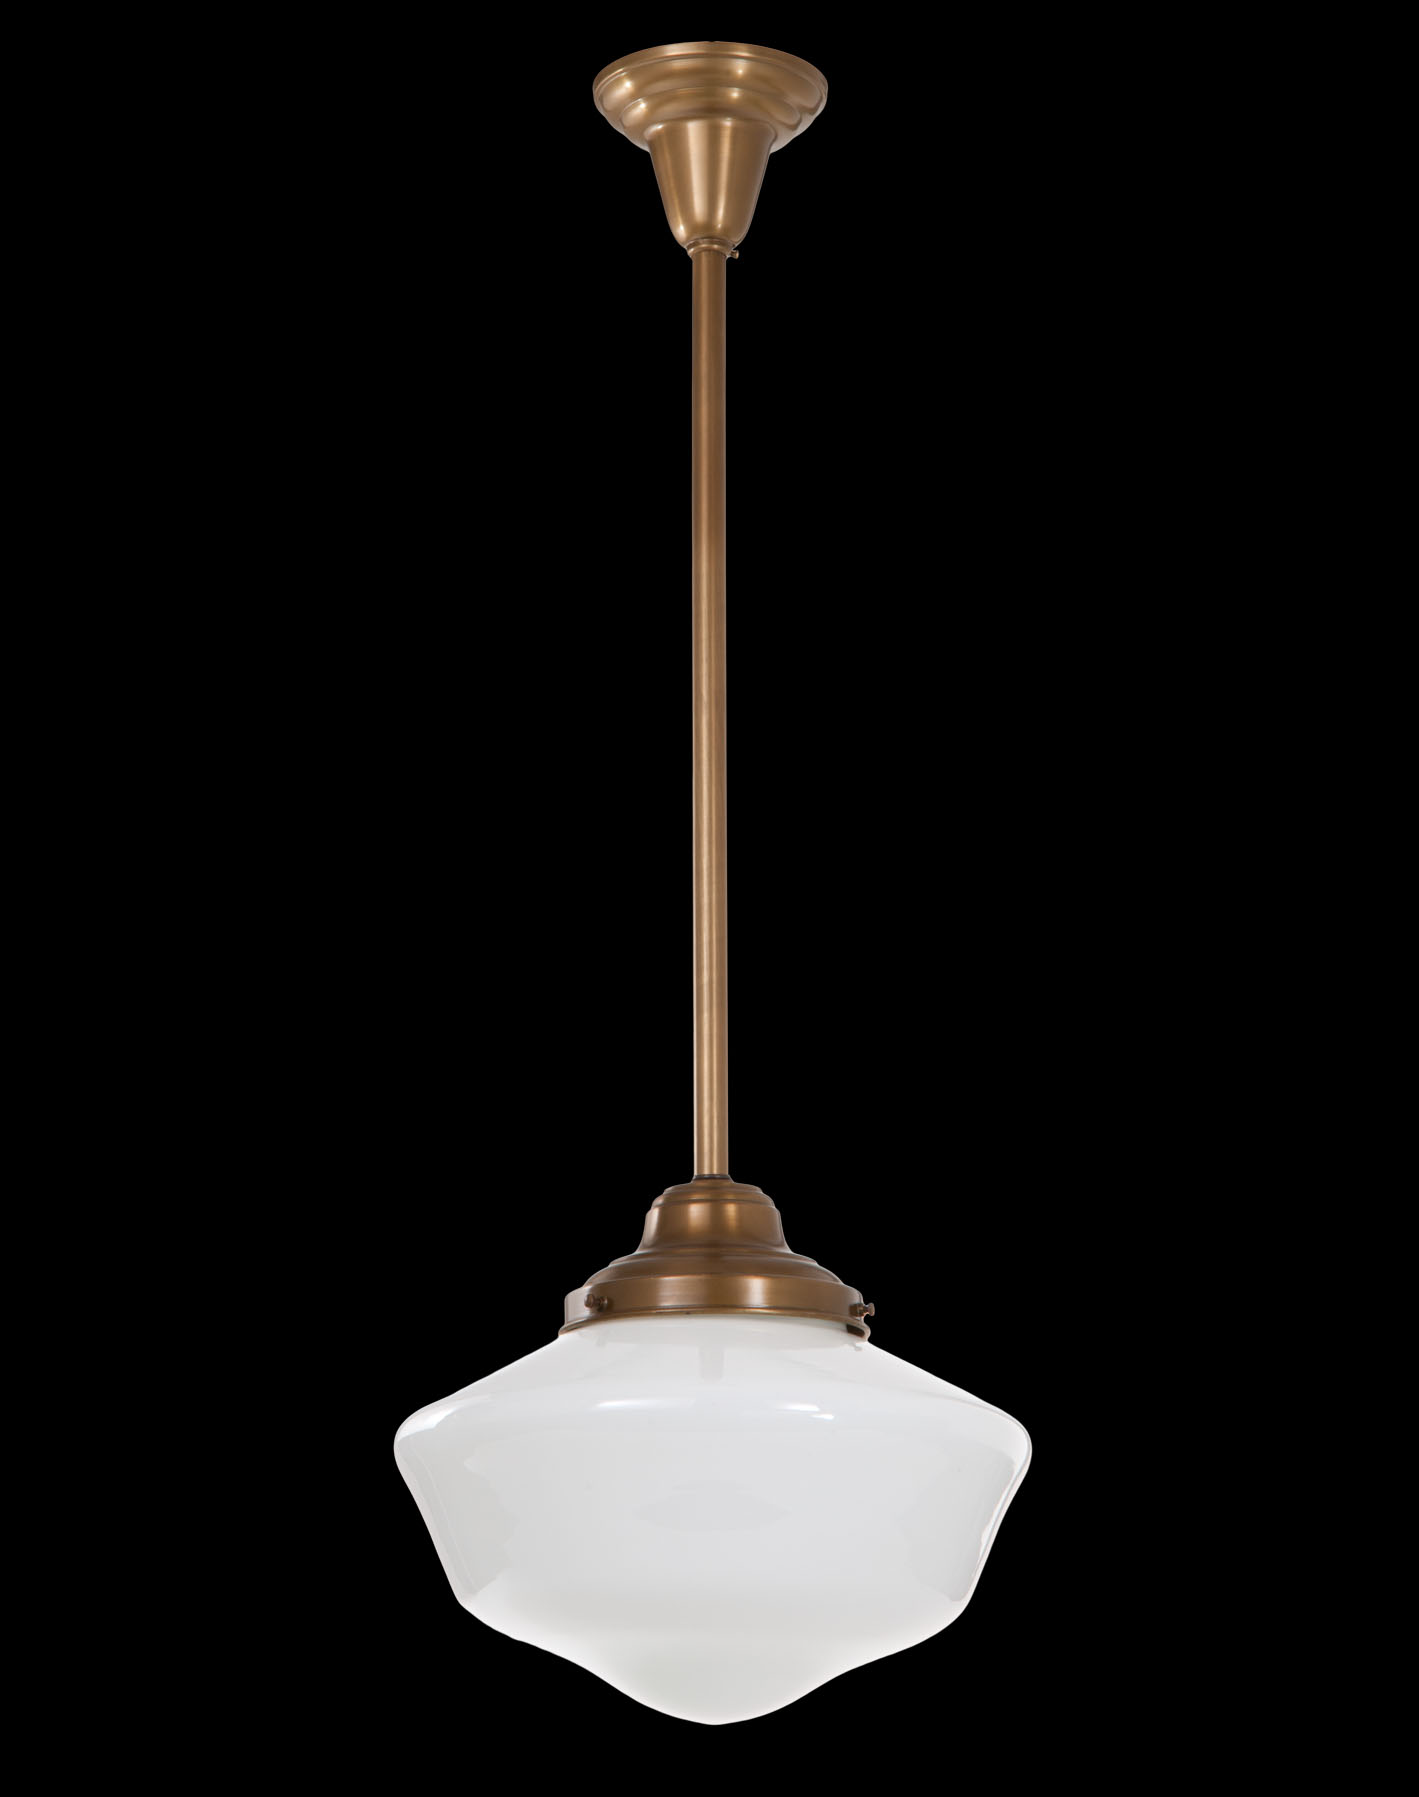 Pendant Fixture With Antique Brass Finish 6 Fitter 69417b